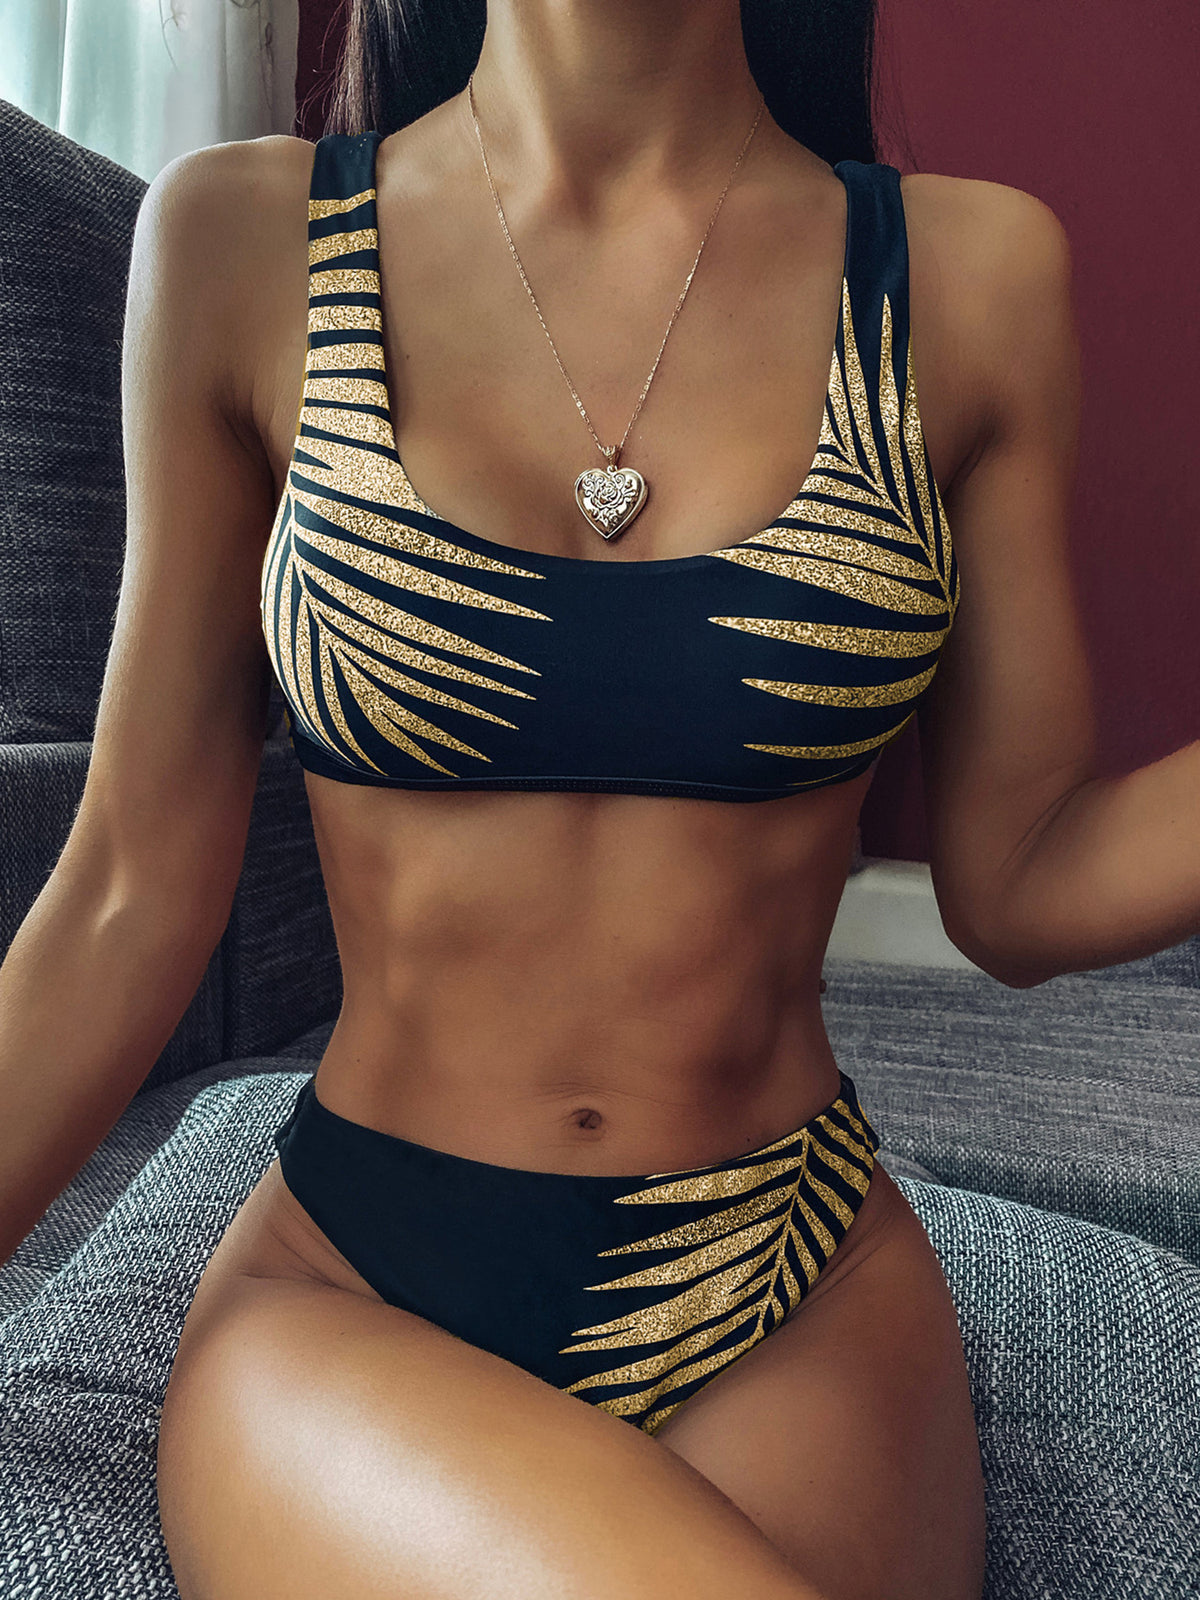 Golden Leaves Print Crop Top Bikini Swimsuit - worthtryit.com